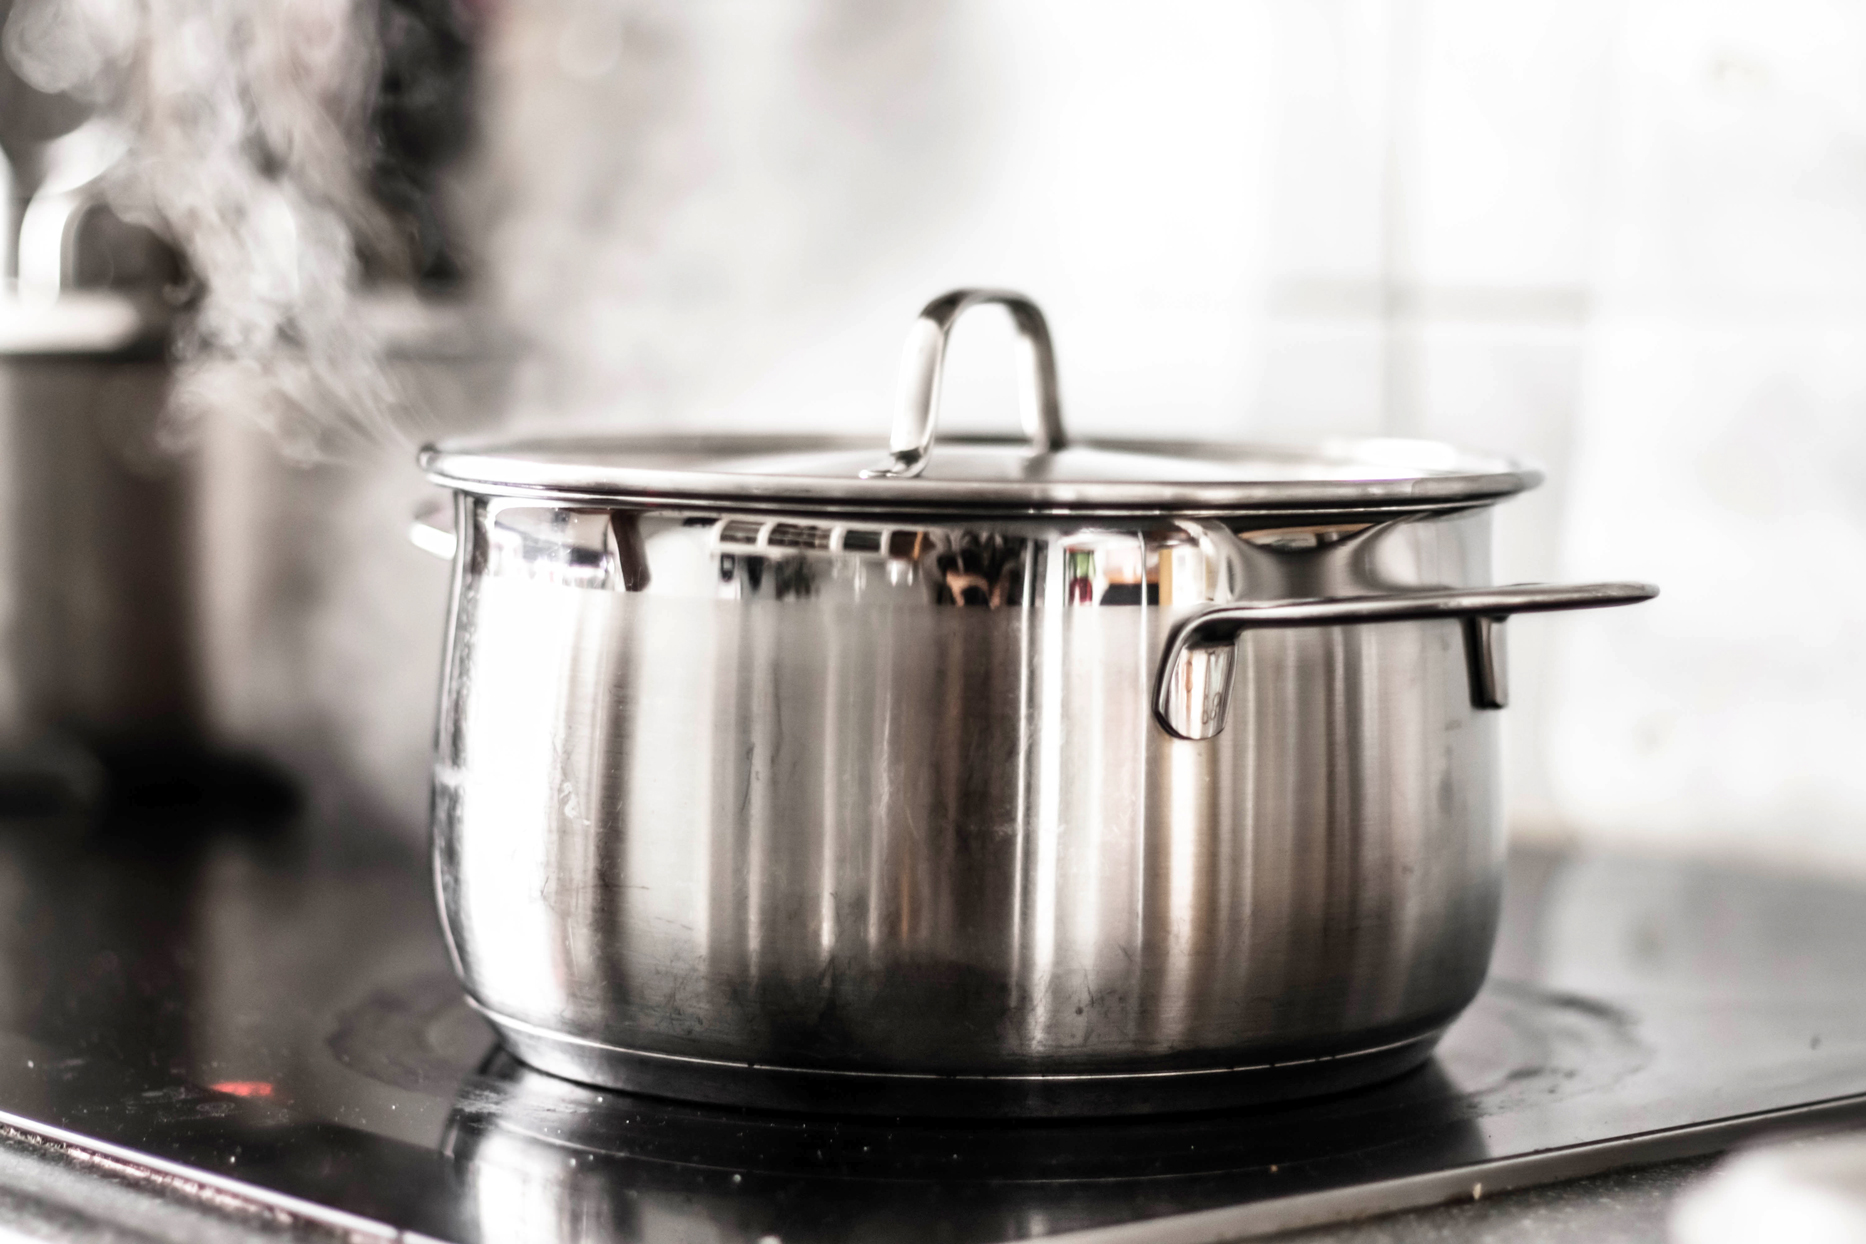 boiling steel pot on stove